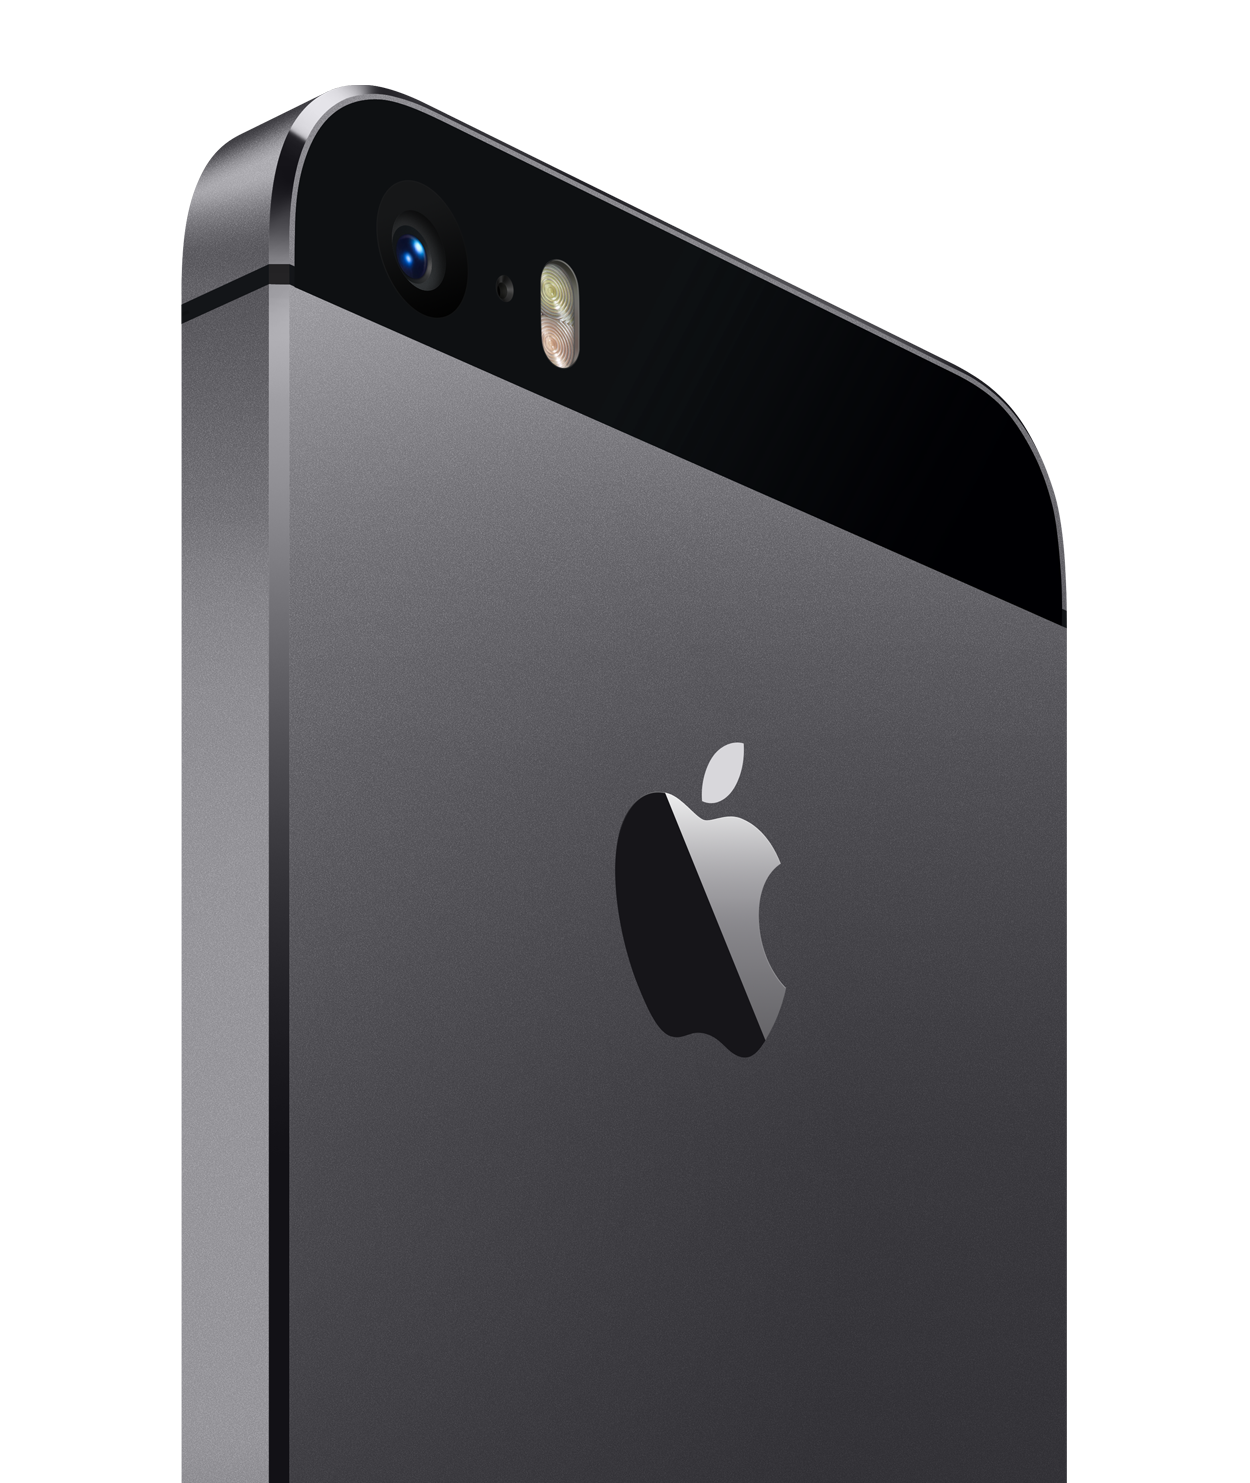 Gray iPhone 5s back